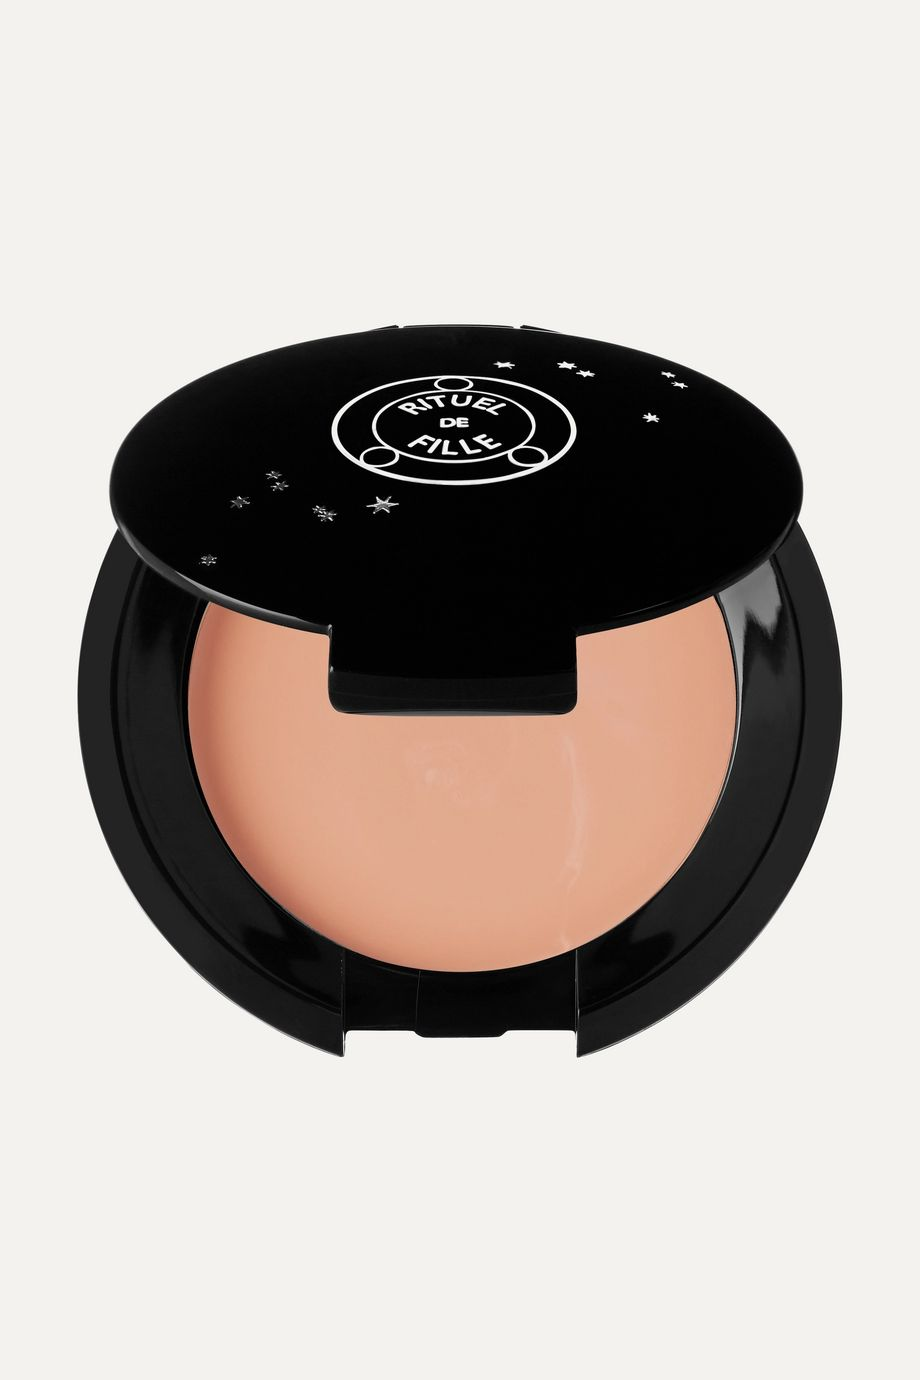 Rituel de Fille The Ethereal Veil Conceal and Cover - Ceres